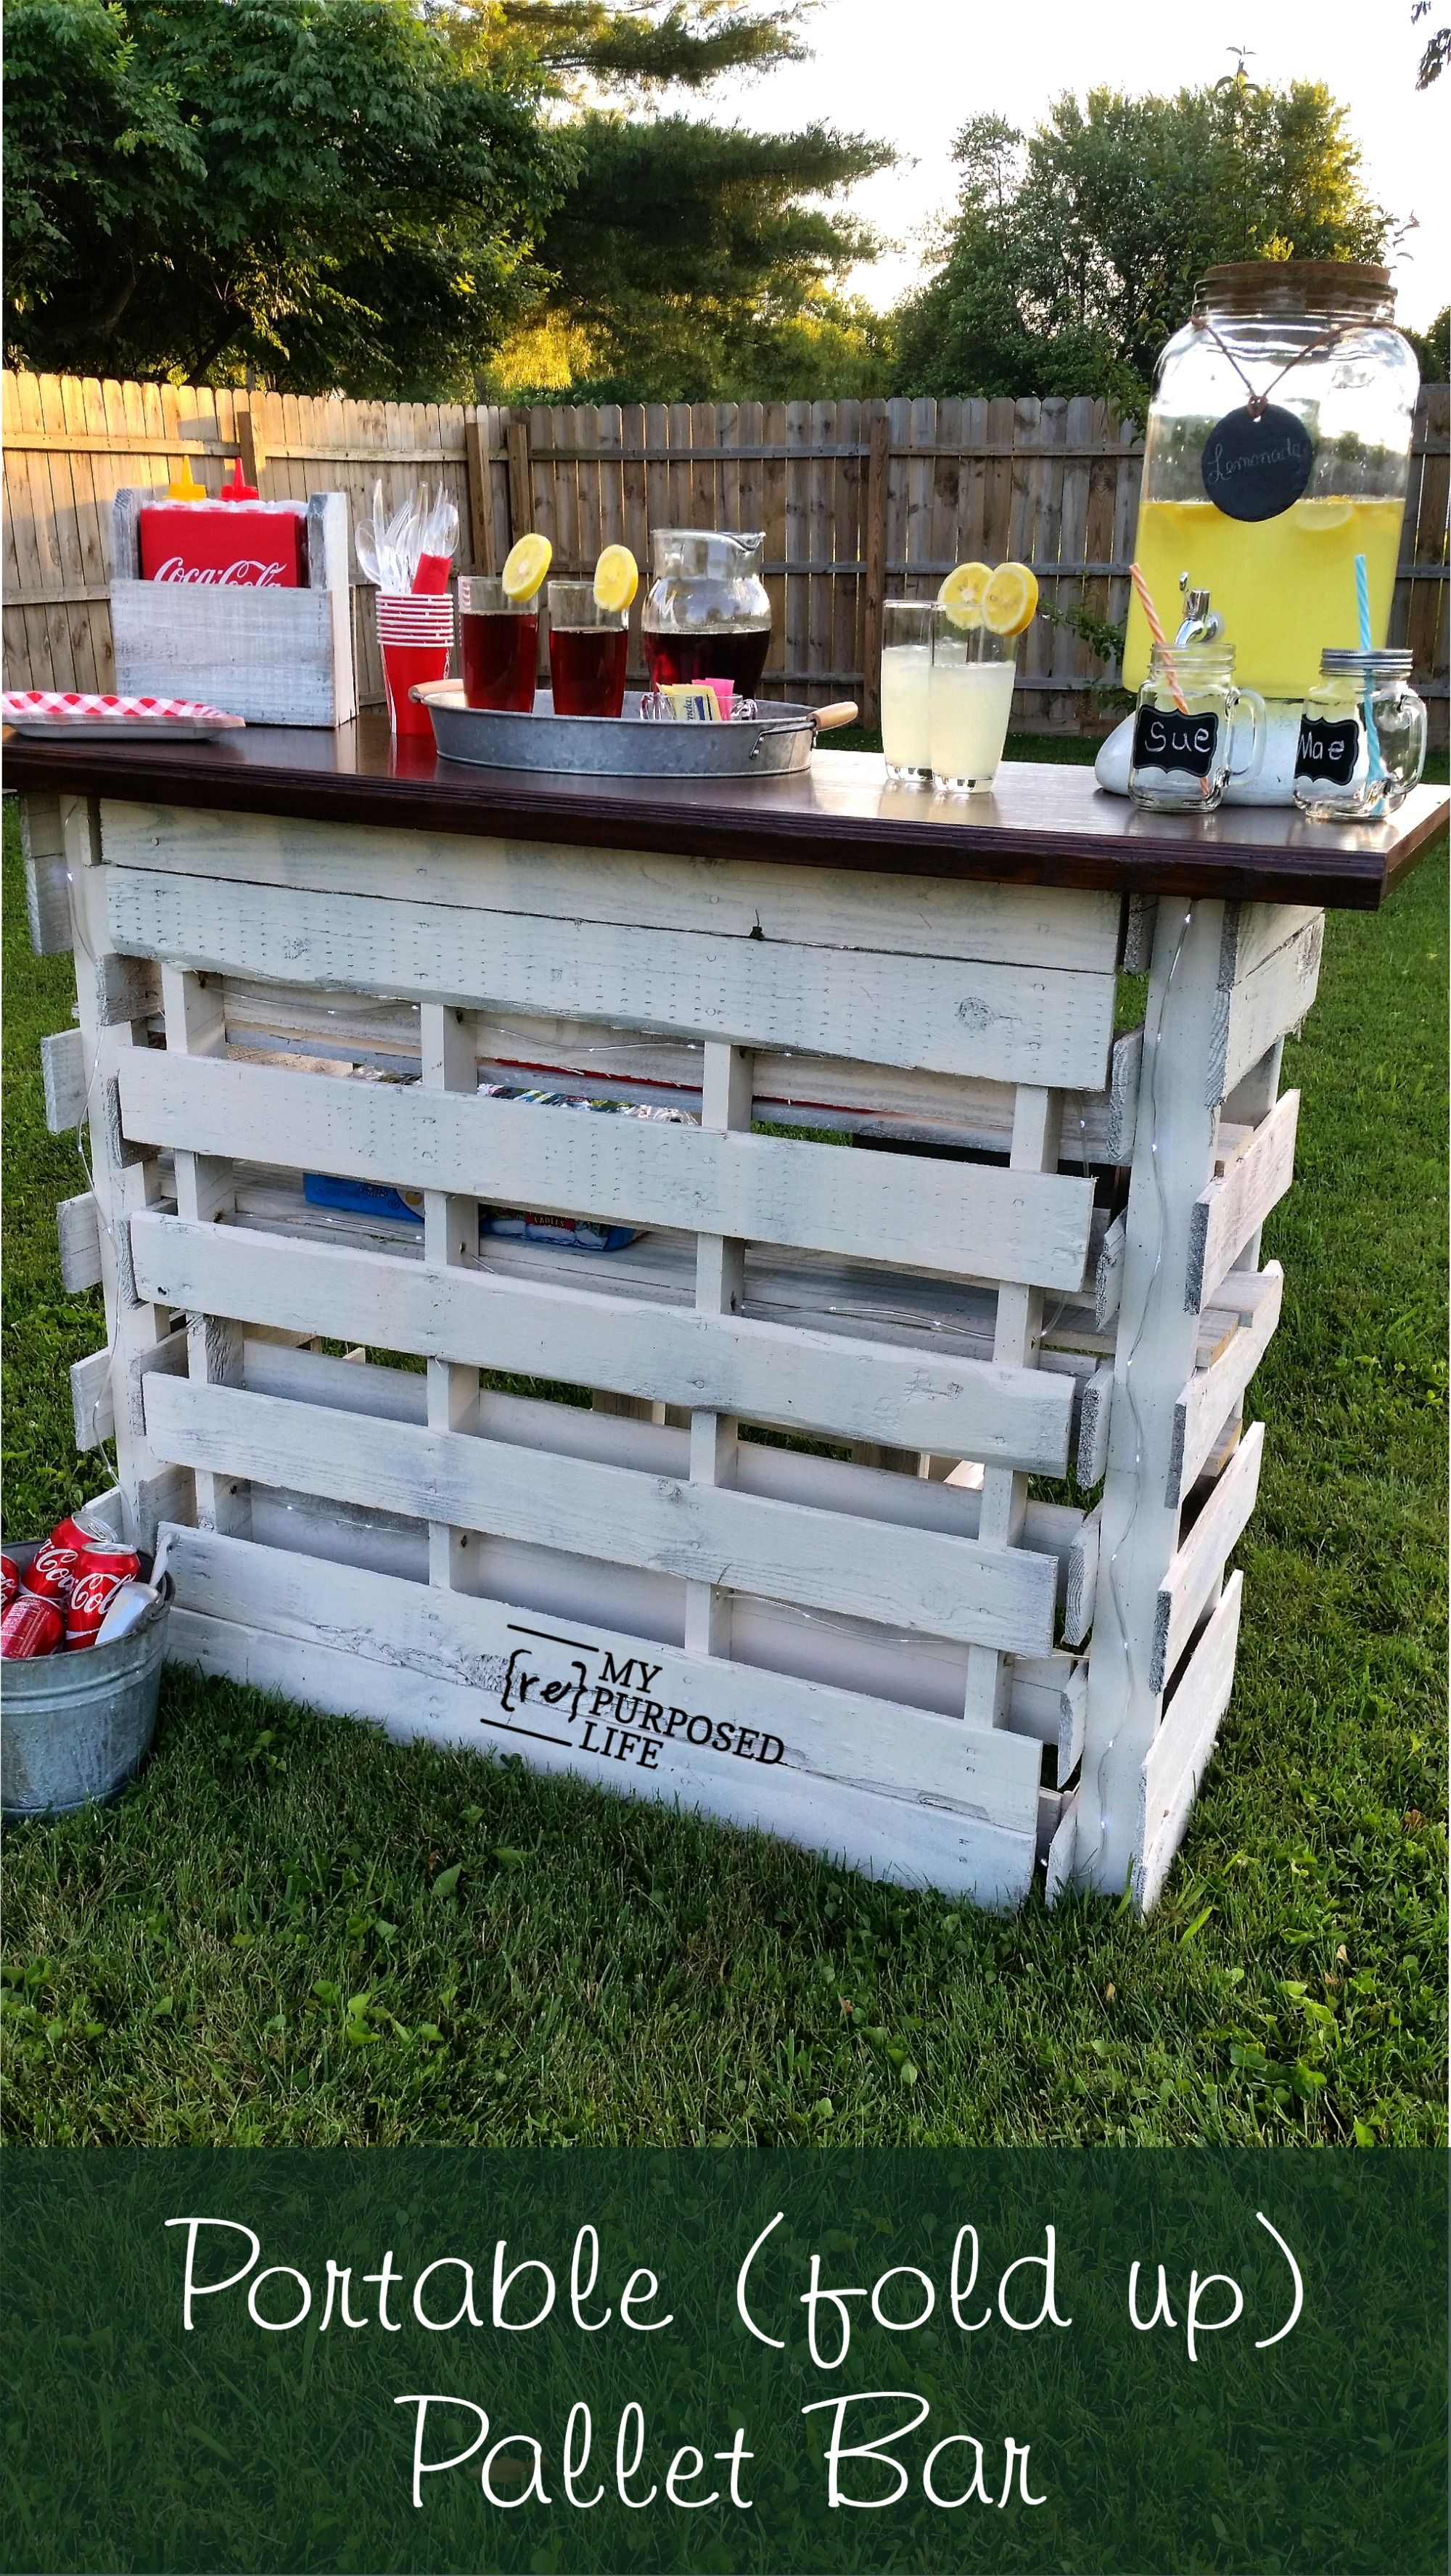 Portable Folding Diy Pallet Bar Great For Weddings Tailgating And More My Repurposed Life Rescue Re Imagine Repeat Pallet Bar Diy Pallet Diy Pallet Bar